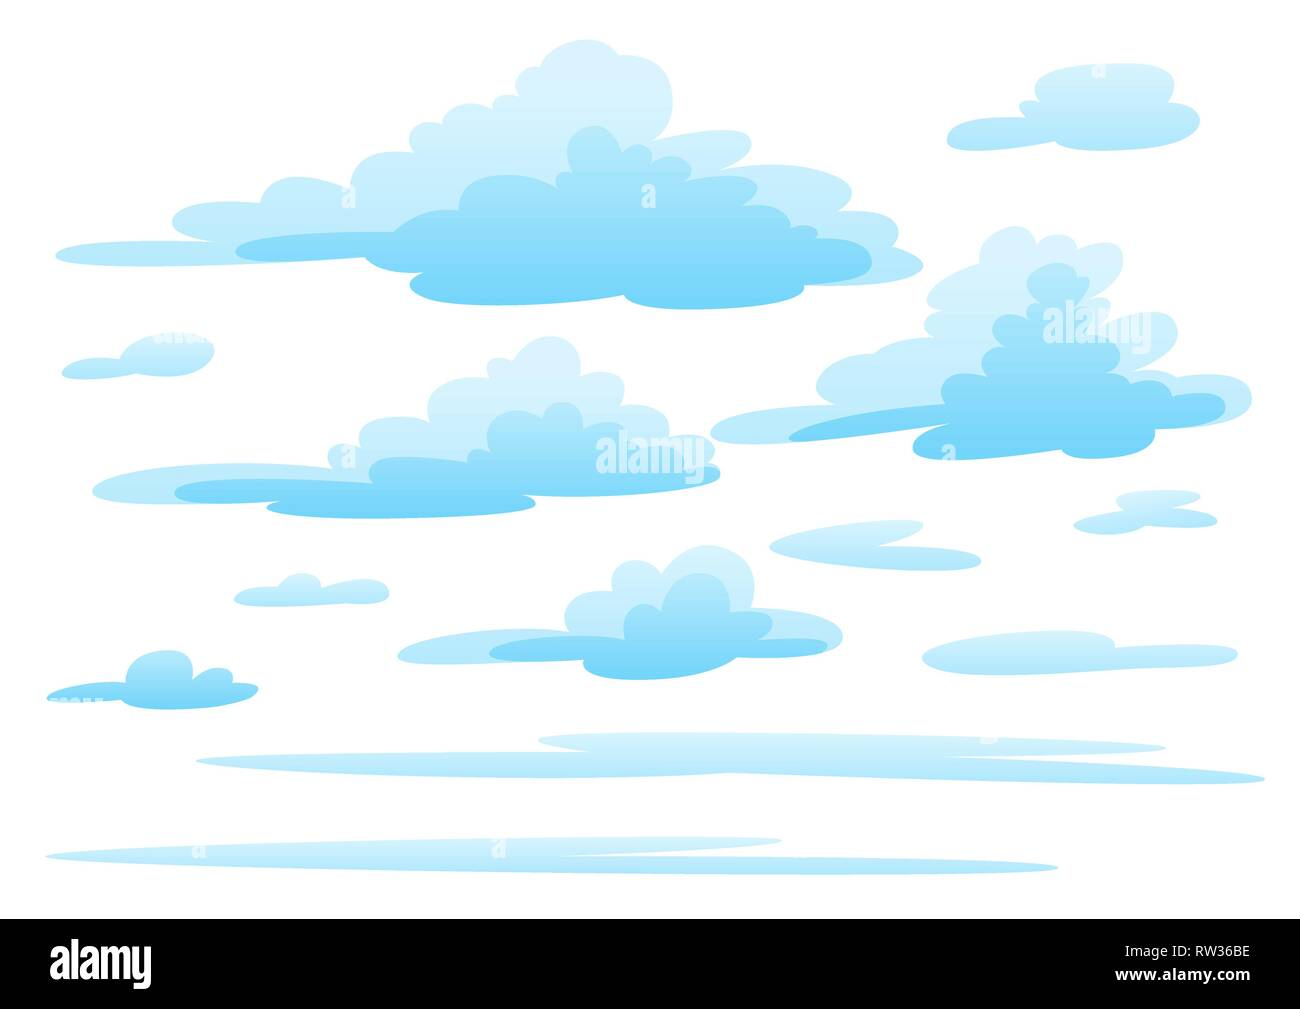 Illustration of clouds on white background. - Stock Image